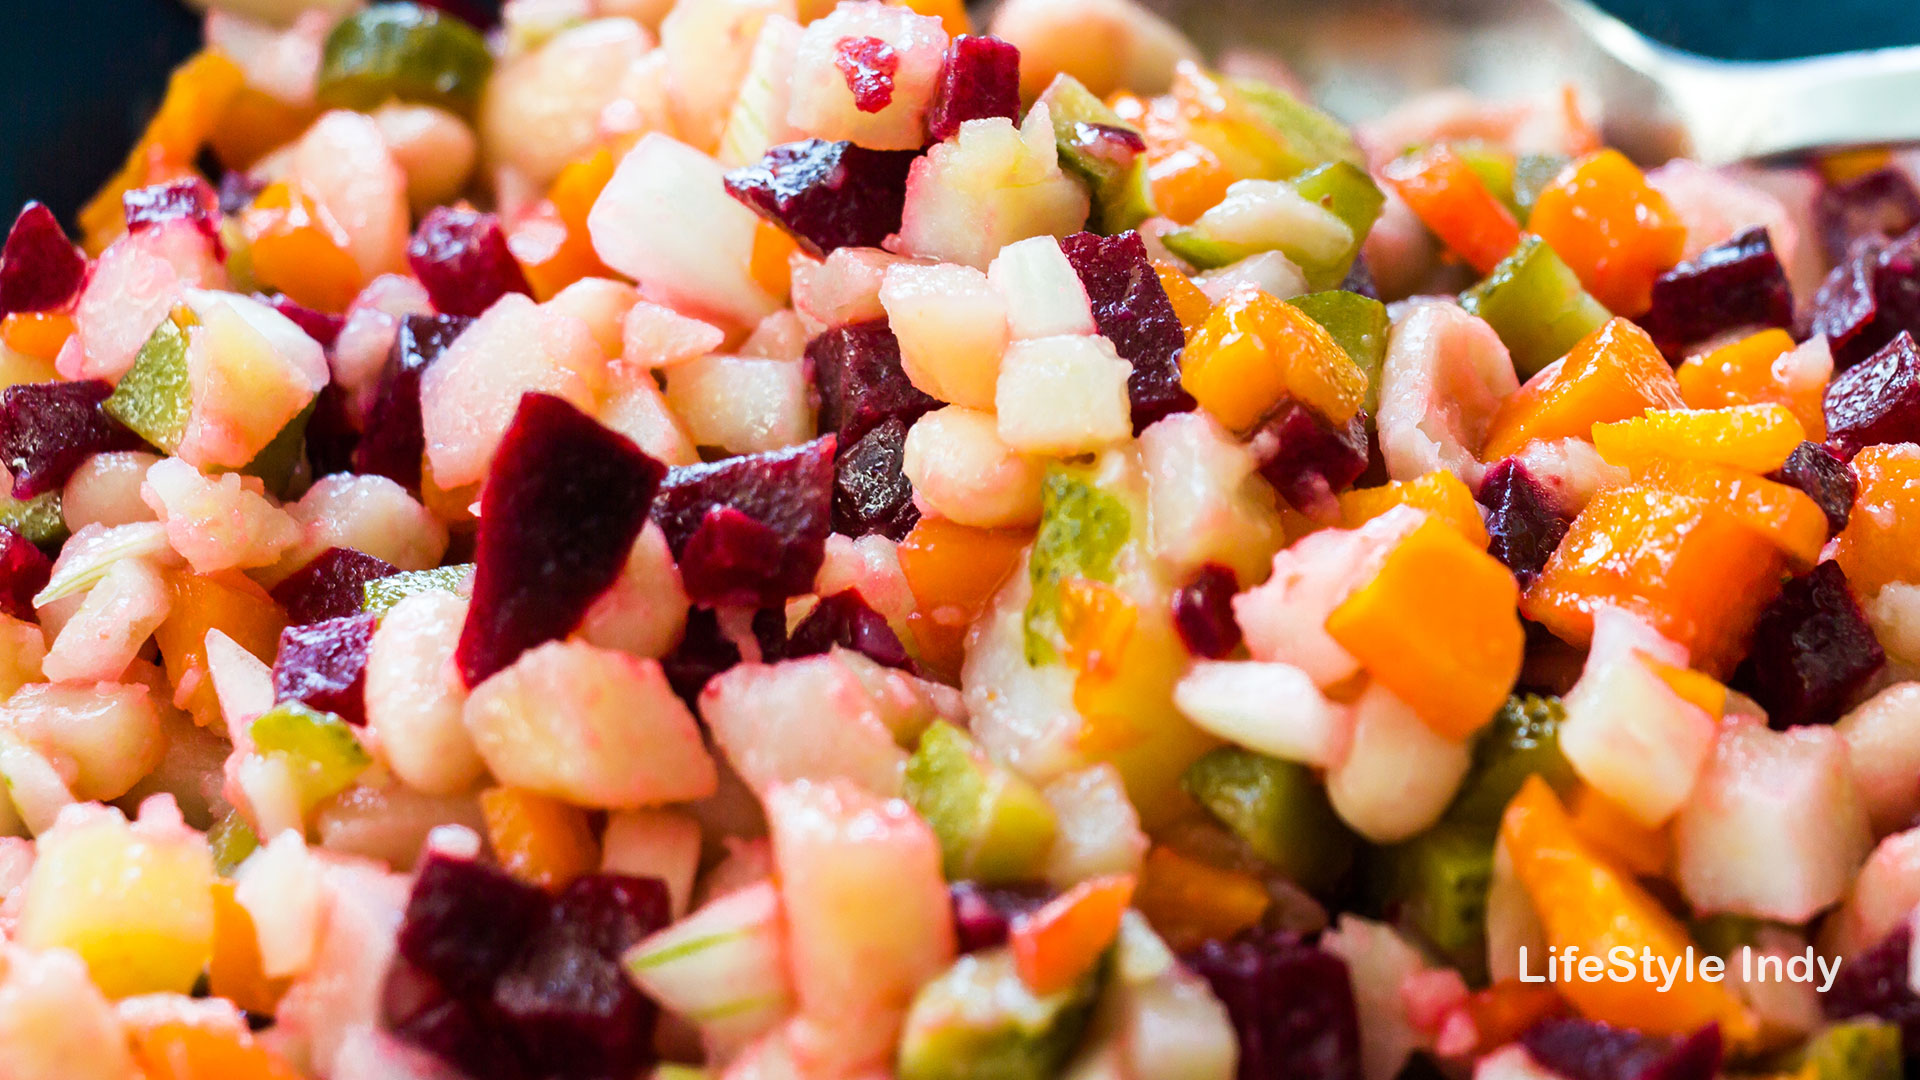 Salad with beetroots, carrots and potatoes